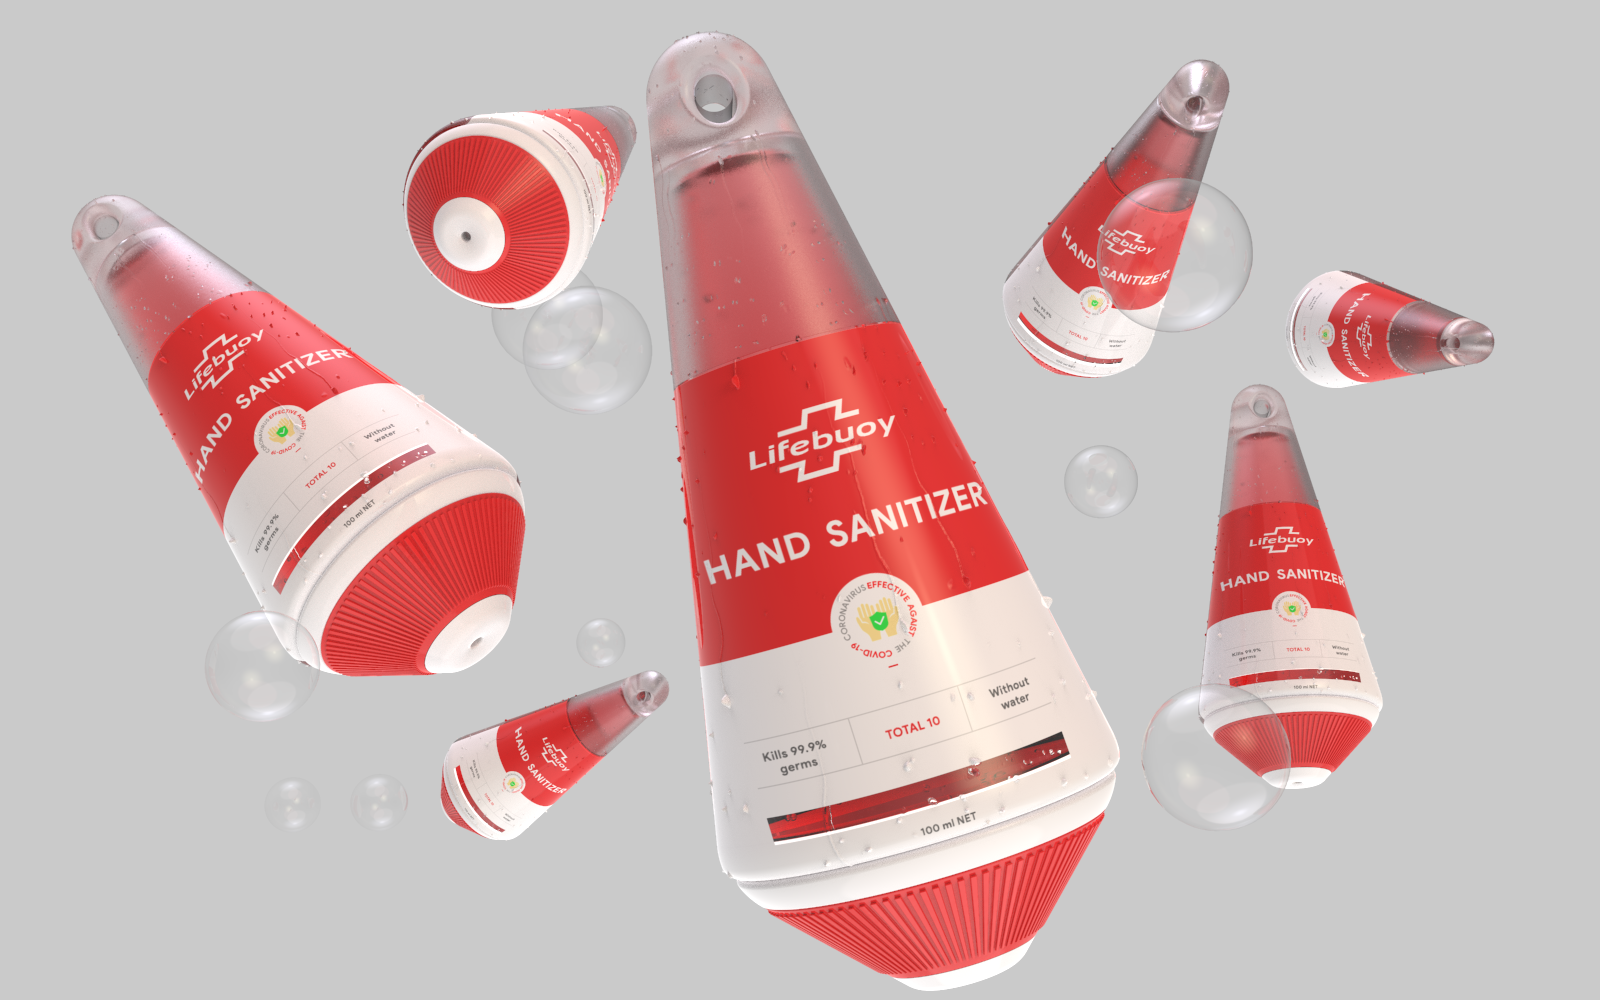 New Lifebuoy Hand Sanitizer Student Packaging Design Concept